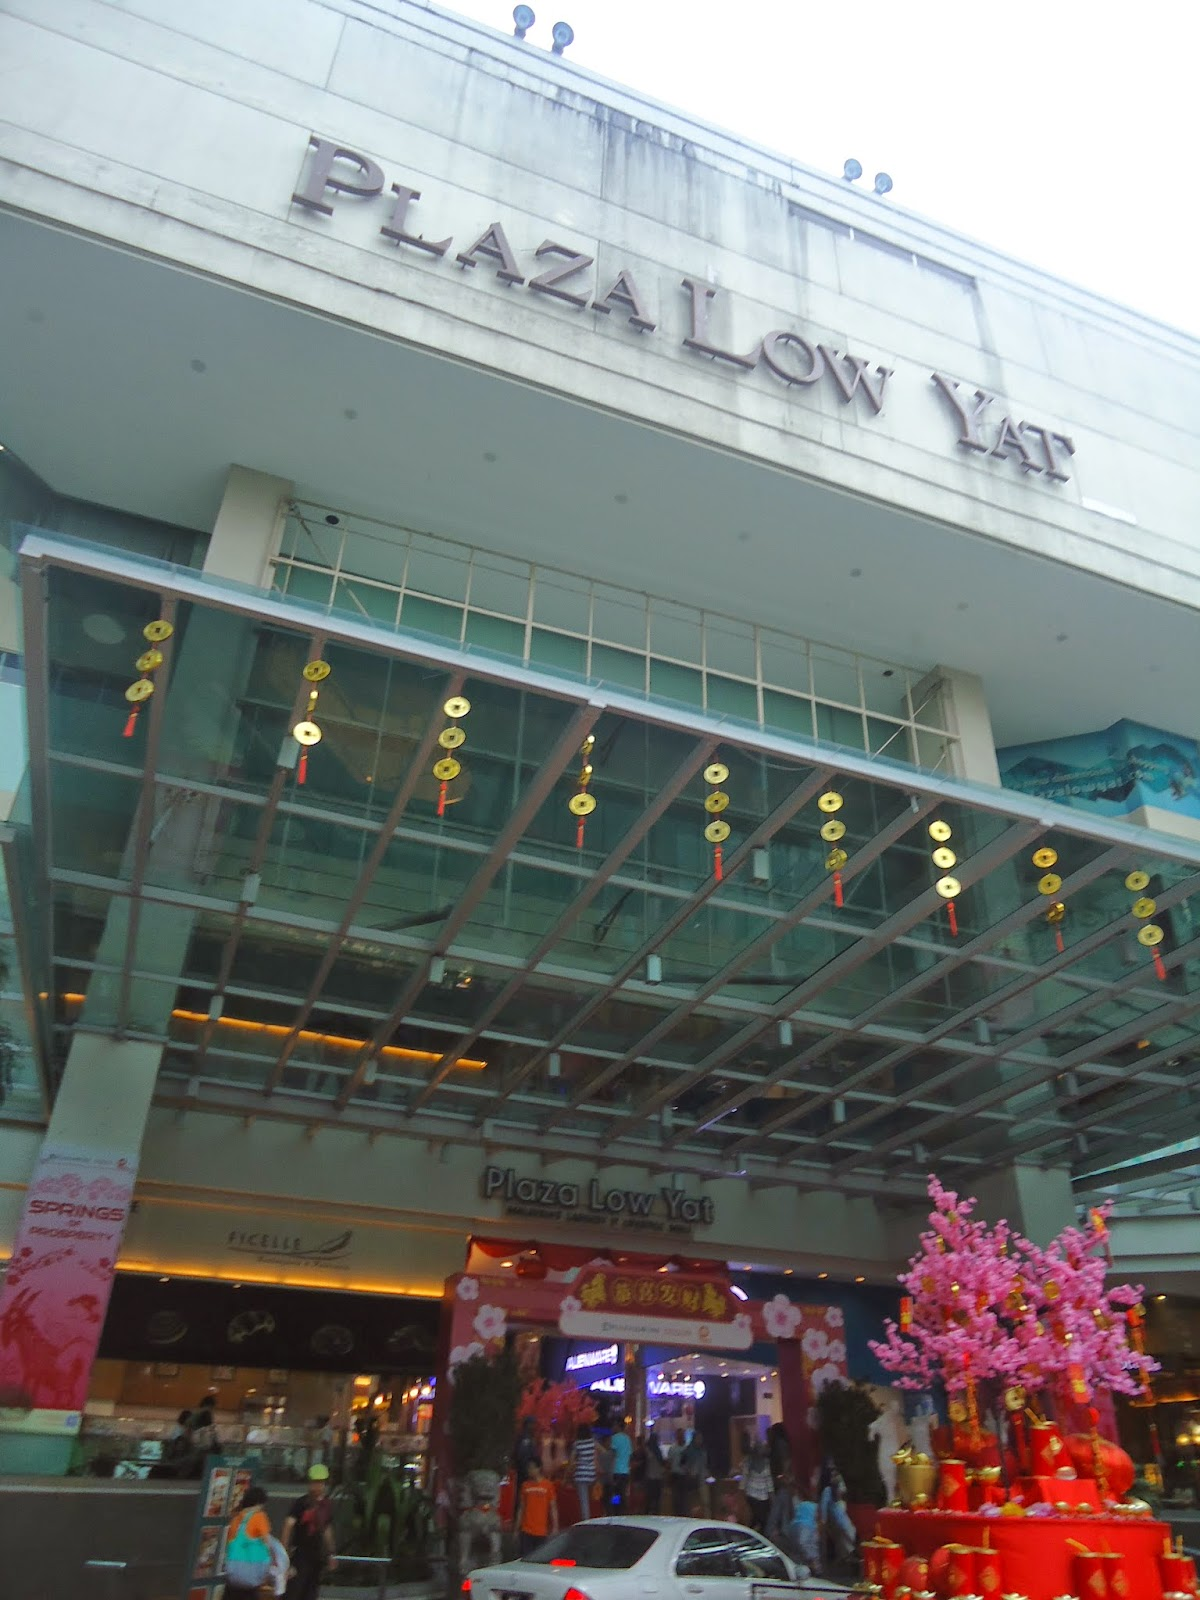 Find the Latest Gadgets at Low Yat Plaza, the Largest IT Lifestyle Mall in Malaysia